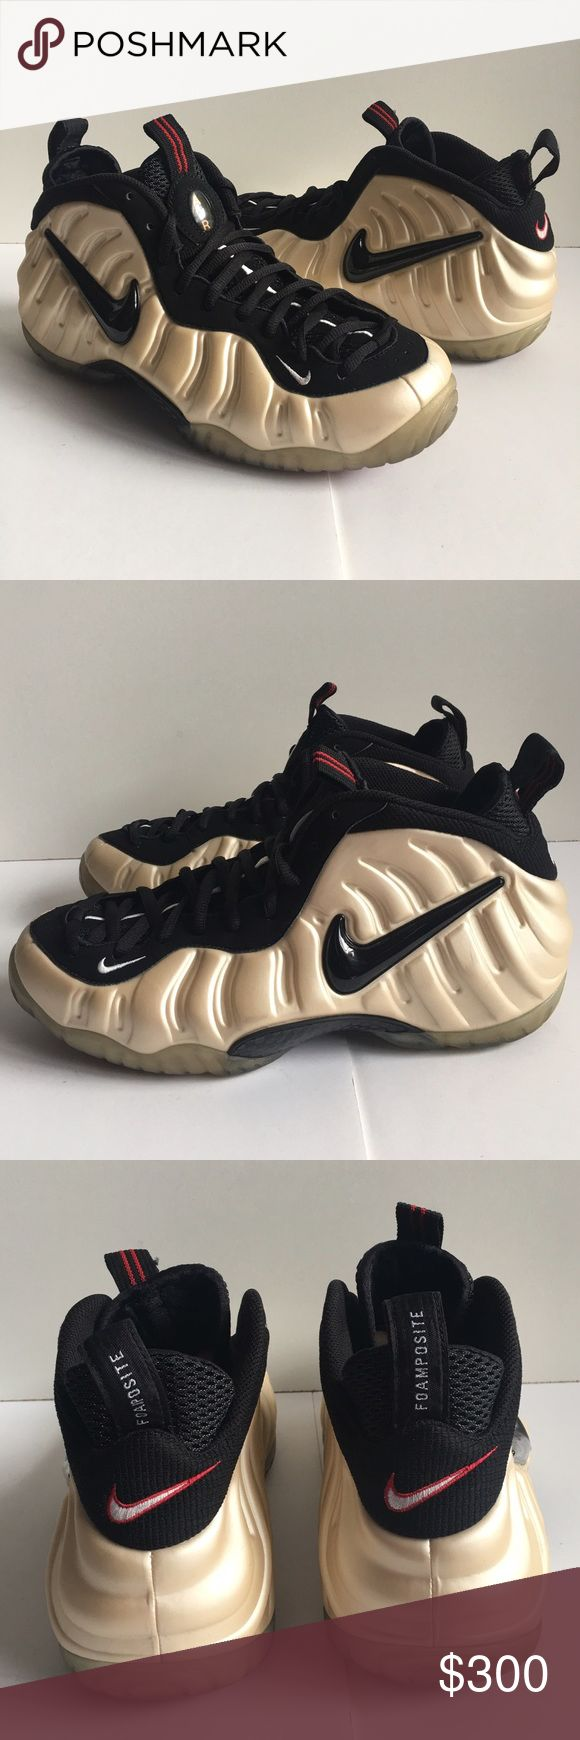 Nike Air Foamposite Pro Pearl 2006 men's size 11.5 Nike Air Foamposite Pro Pearl 2006 men's size 11.5. Near perfect condition. Worn 2x. Nike Shoes Athletic Shoes